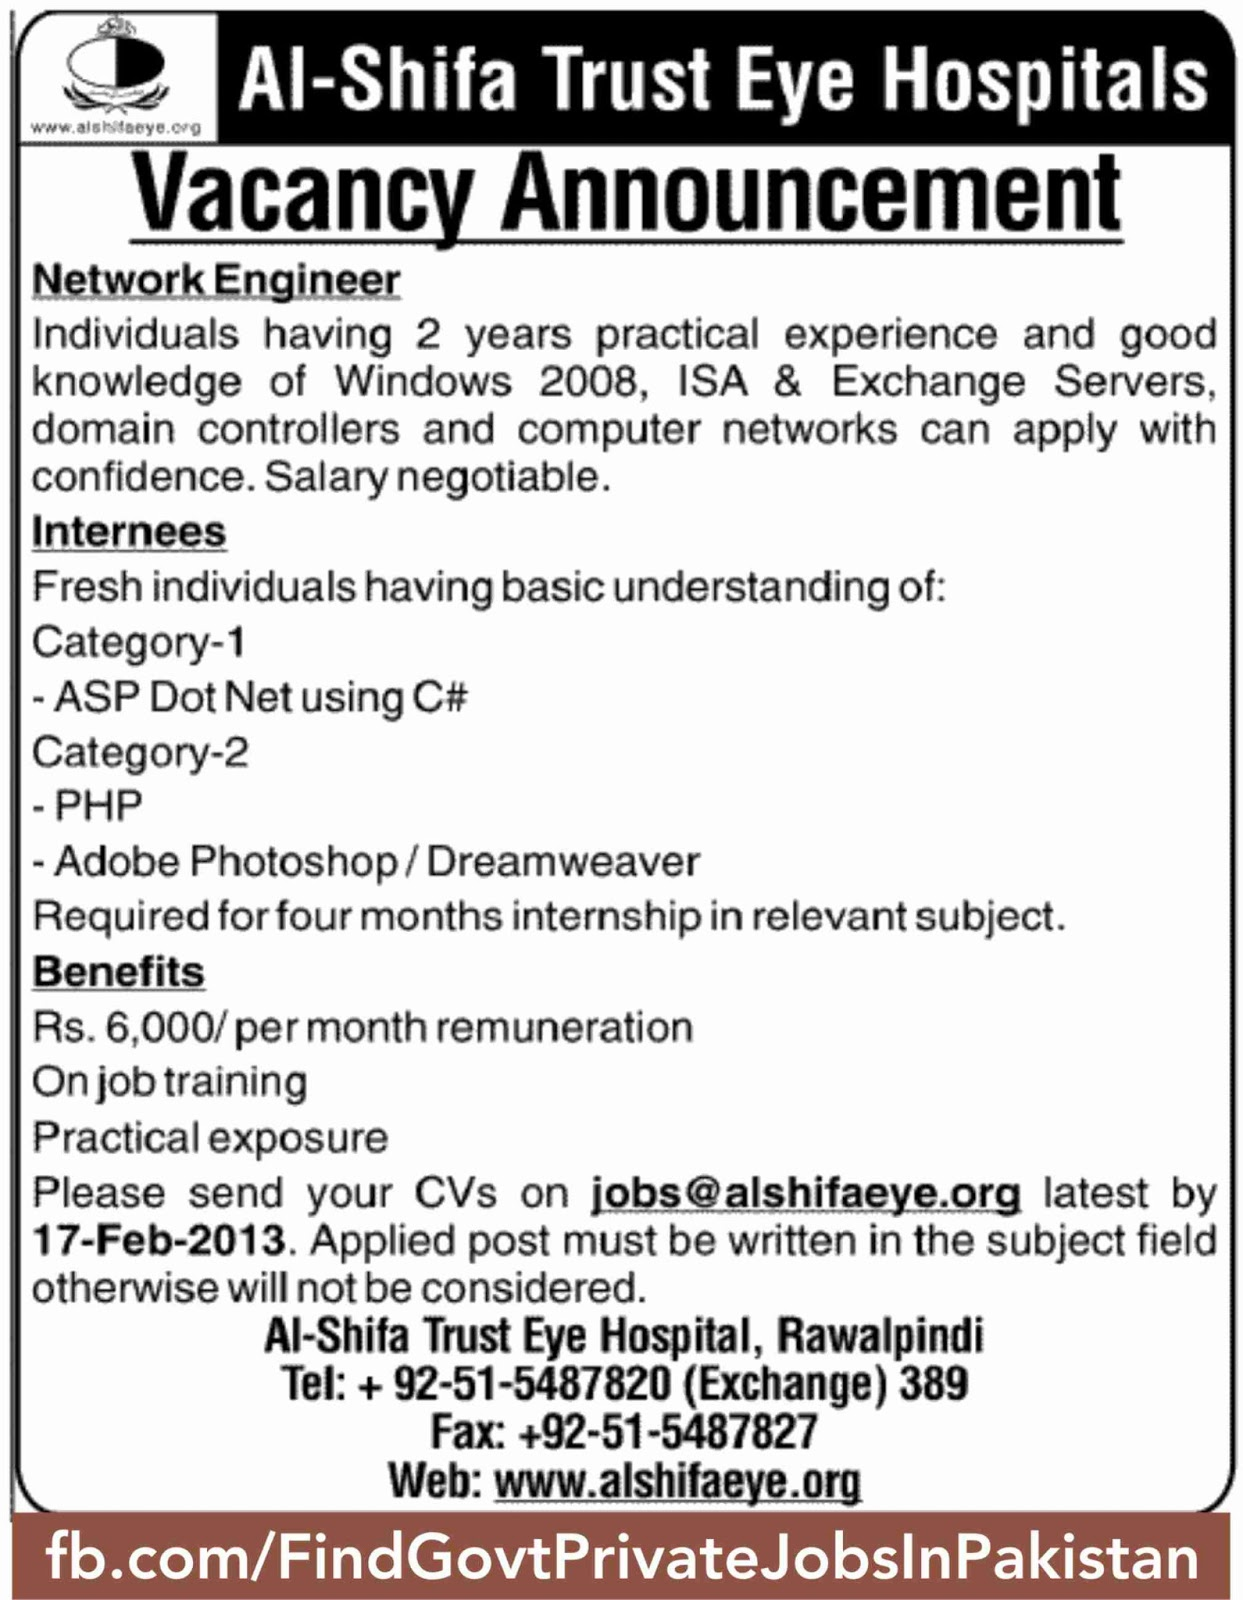 al-shifa eye hospital advertise job opportunity in jang sunday